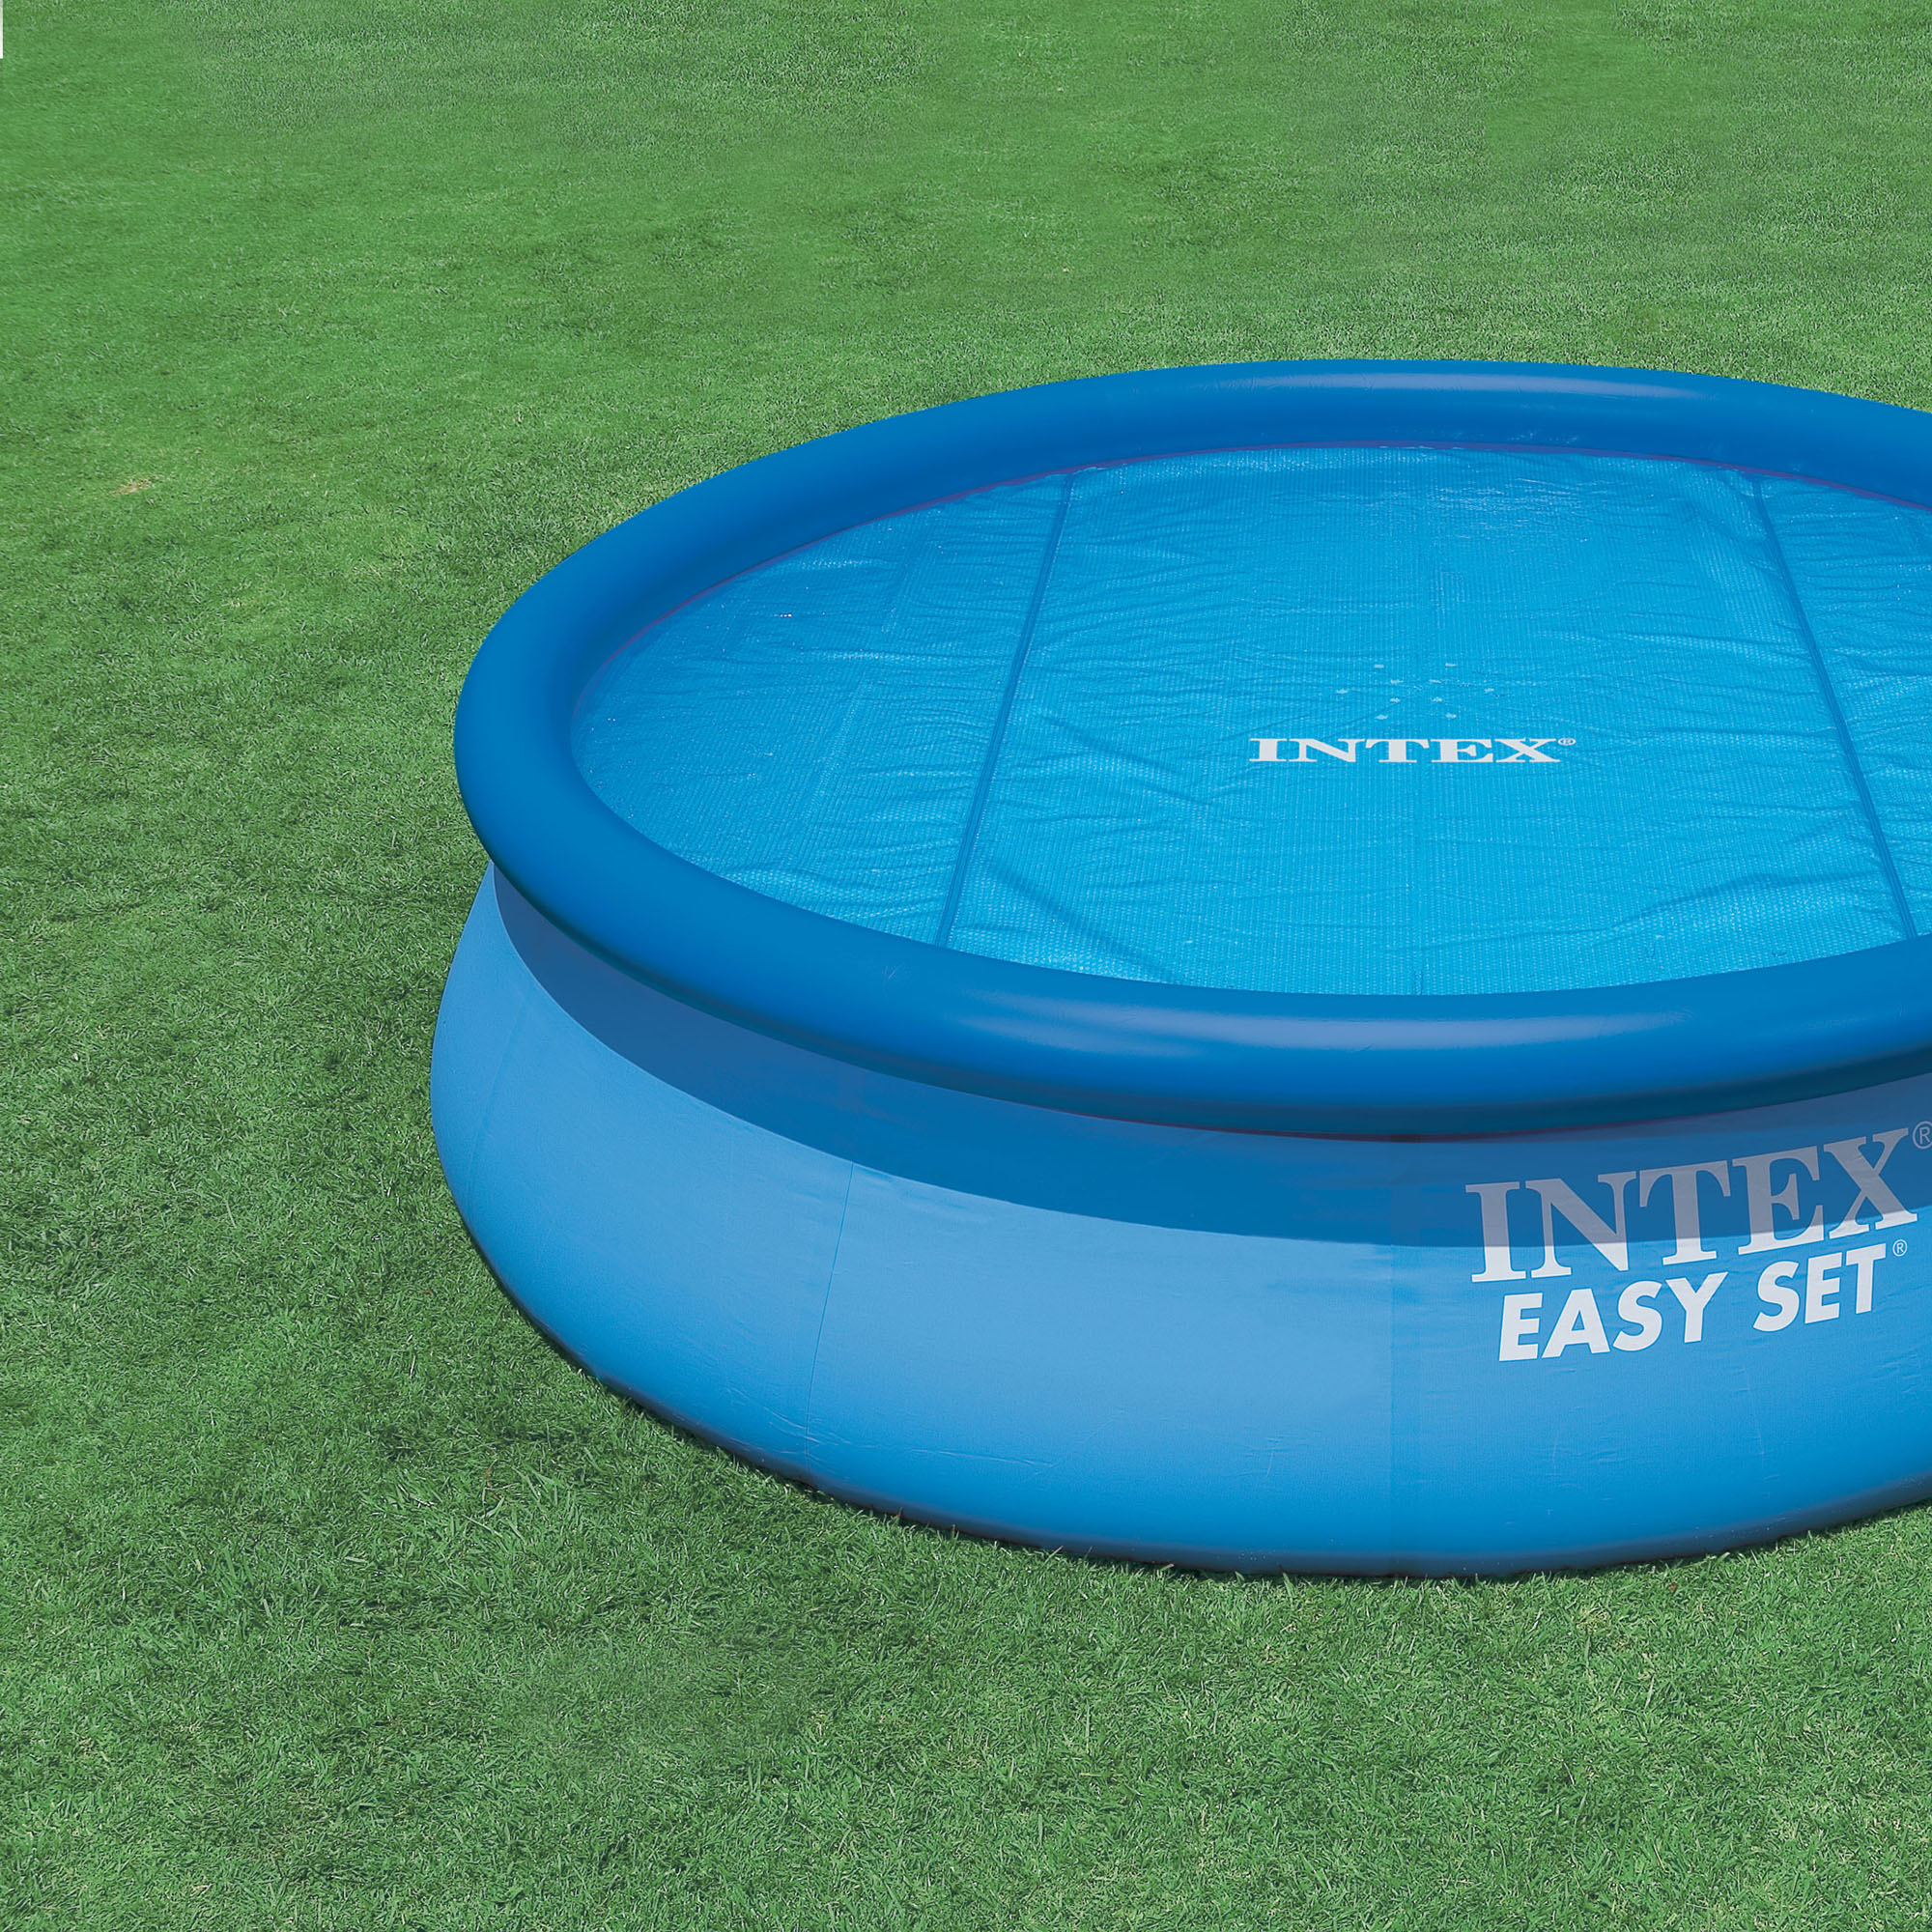 intex 15 foot round easy set vinyl solar cover for swimming pools blue 29023e 703457319168 ebay. Black Bedroom Furniture Sets. Home Design Ideas